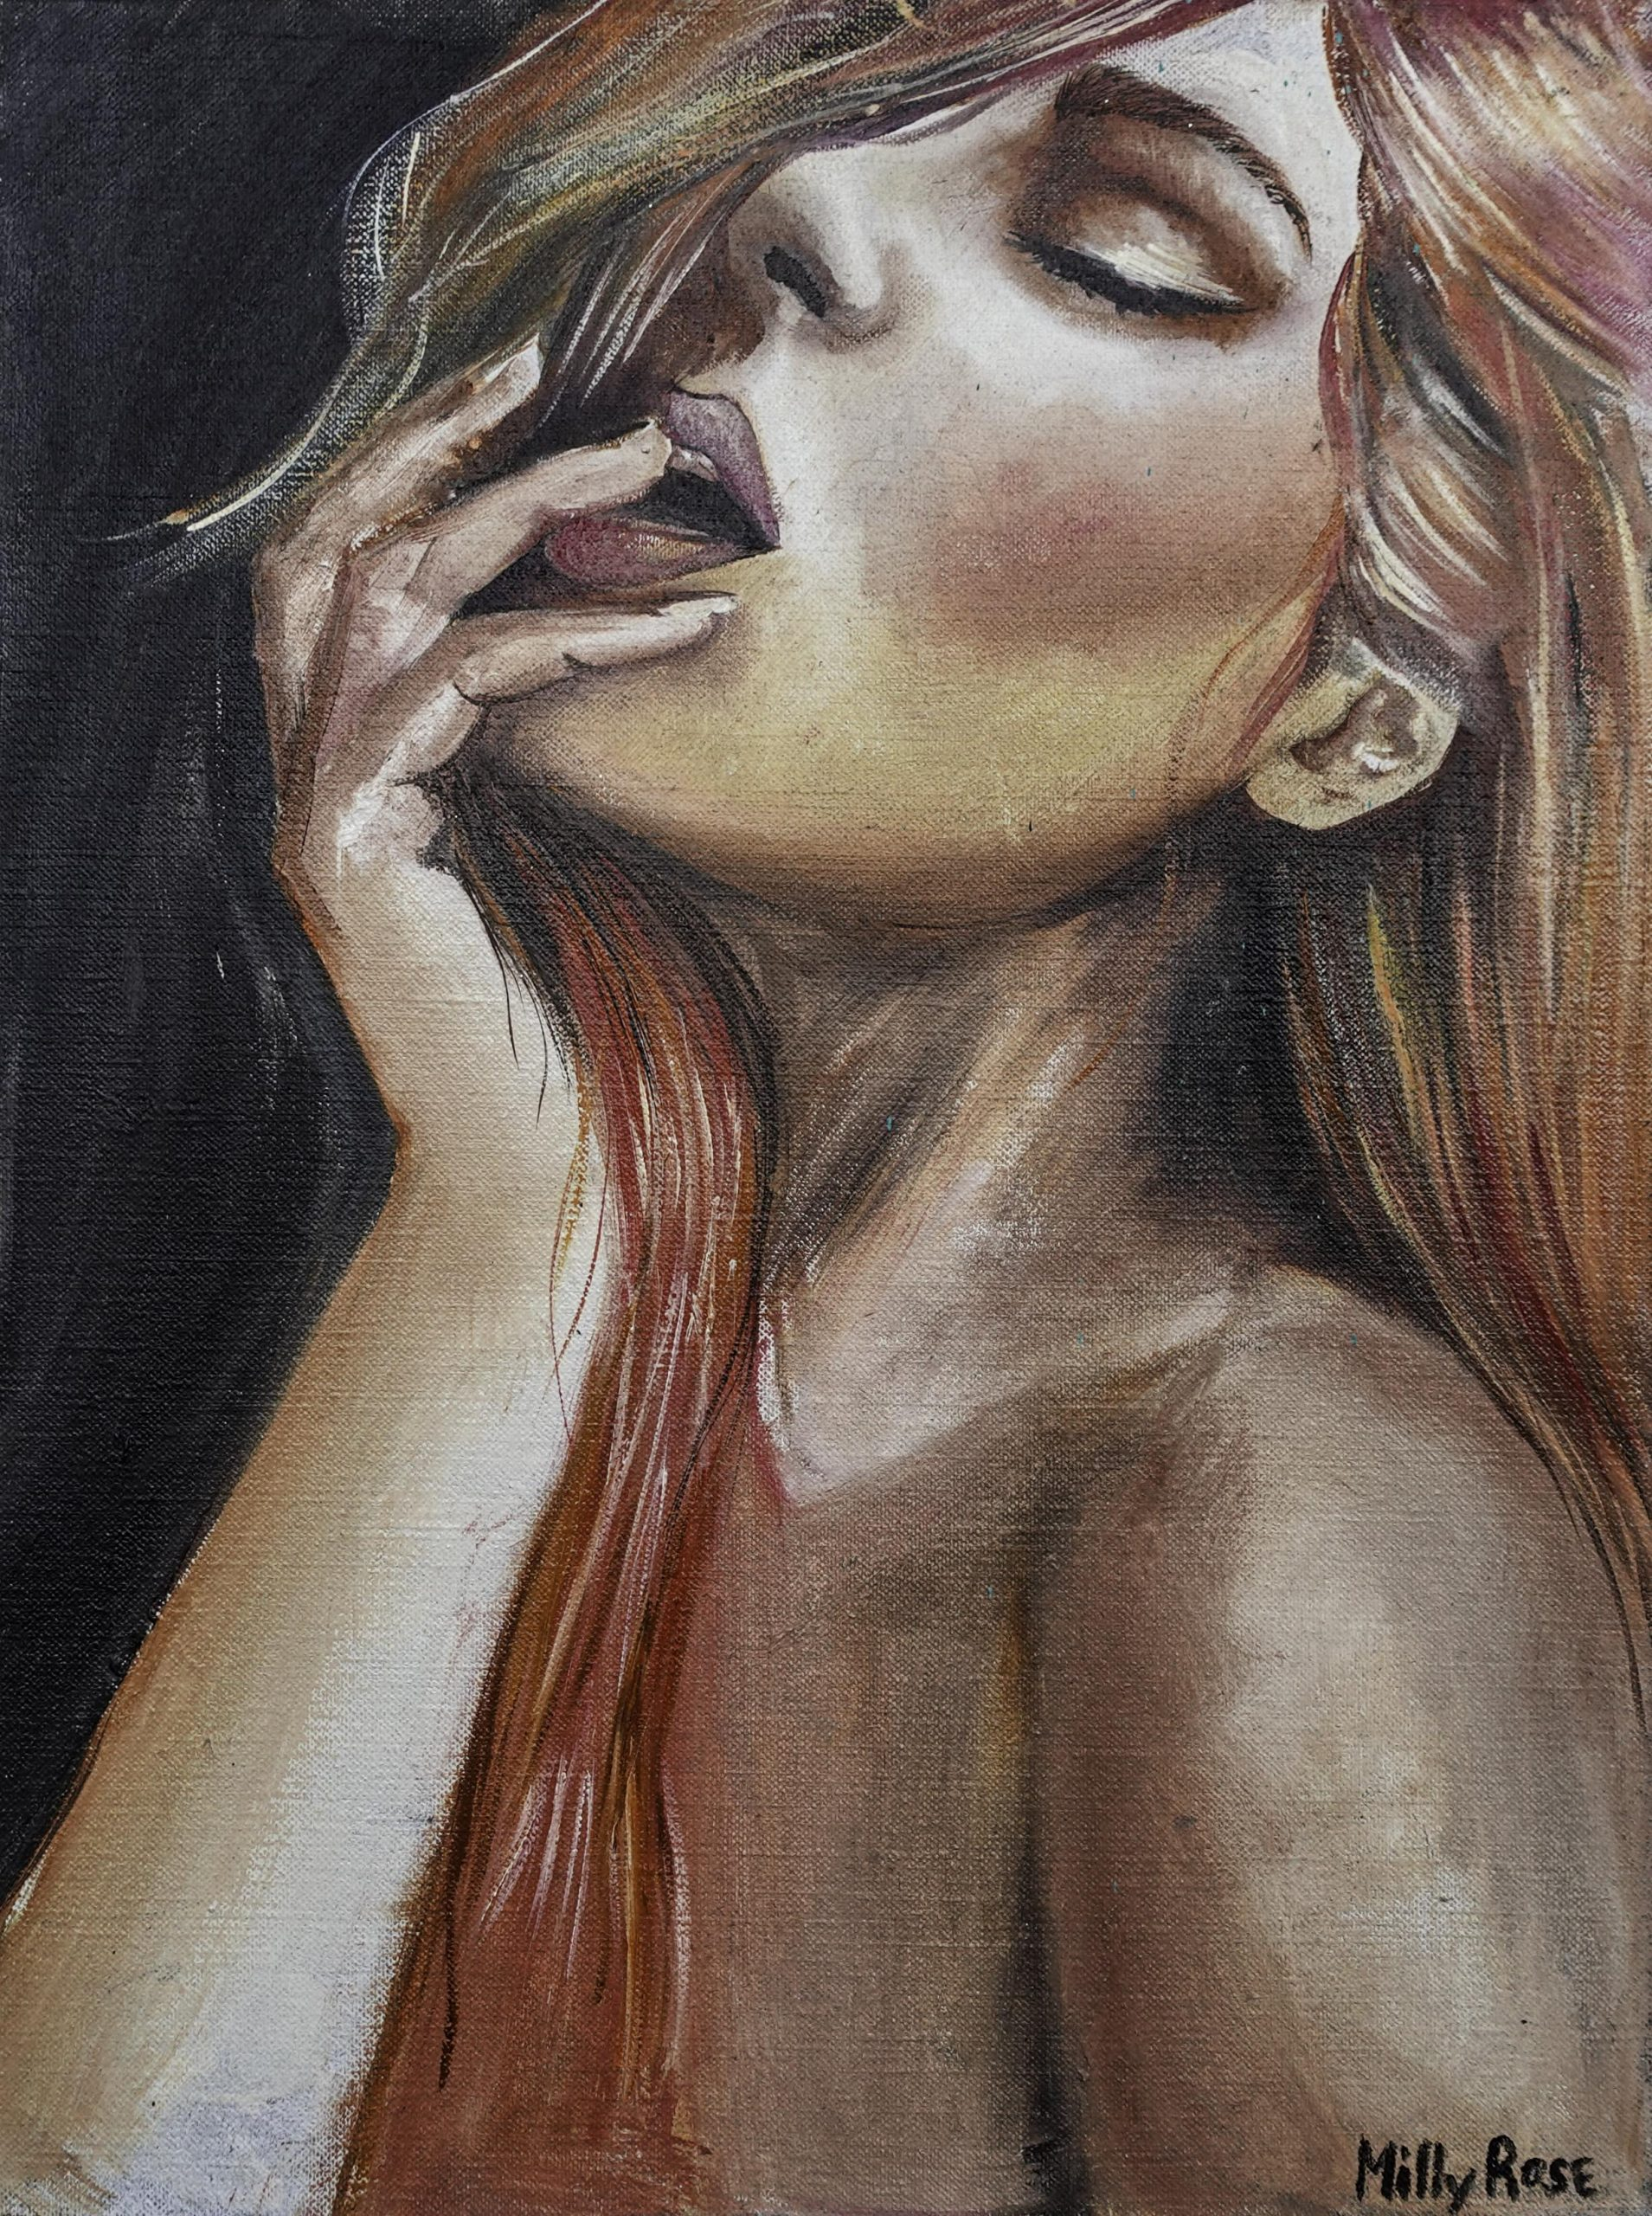 Fingers in Mouth (46cm x 62cm)